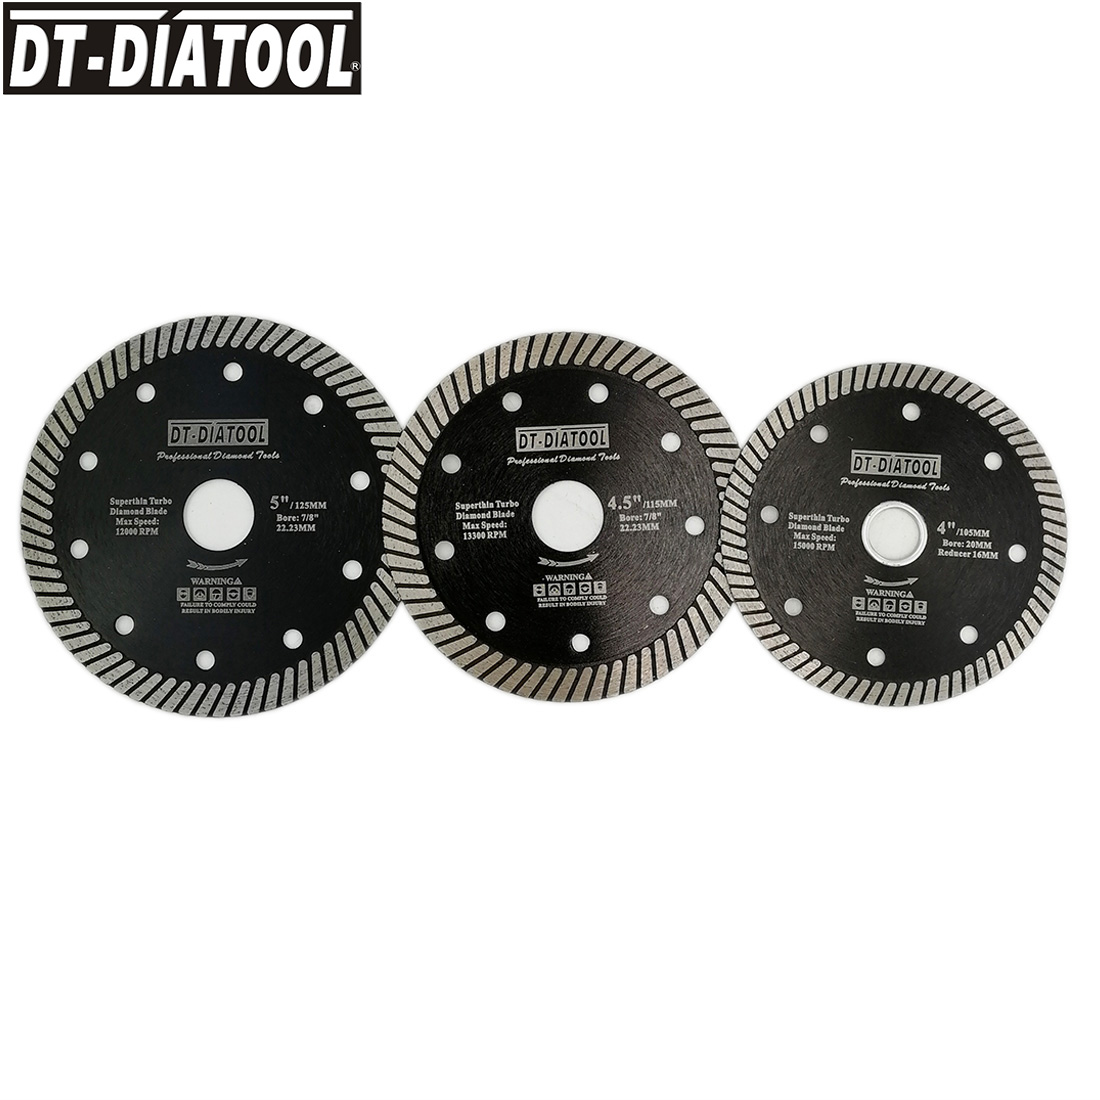 DT-DIATOOL 1pc Super-Thin Hot Pressed Turbo Diamond Saw Blade Cutting Disc Dia 105/115/125mm Cutting Wheel Marble Tile Granite